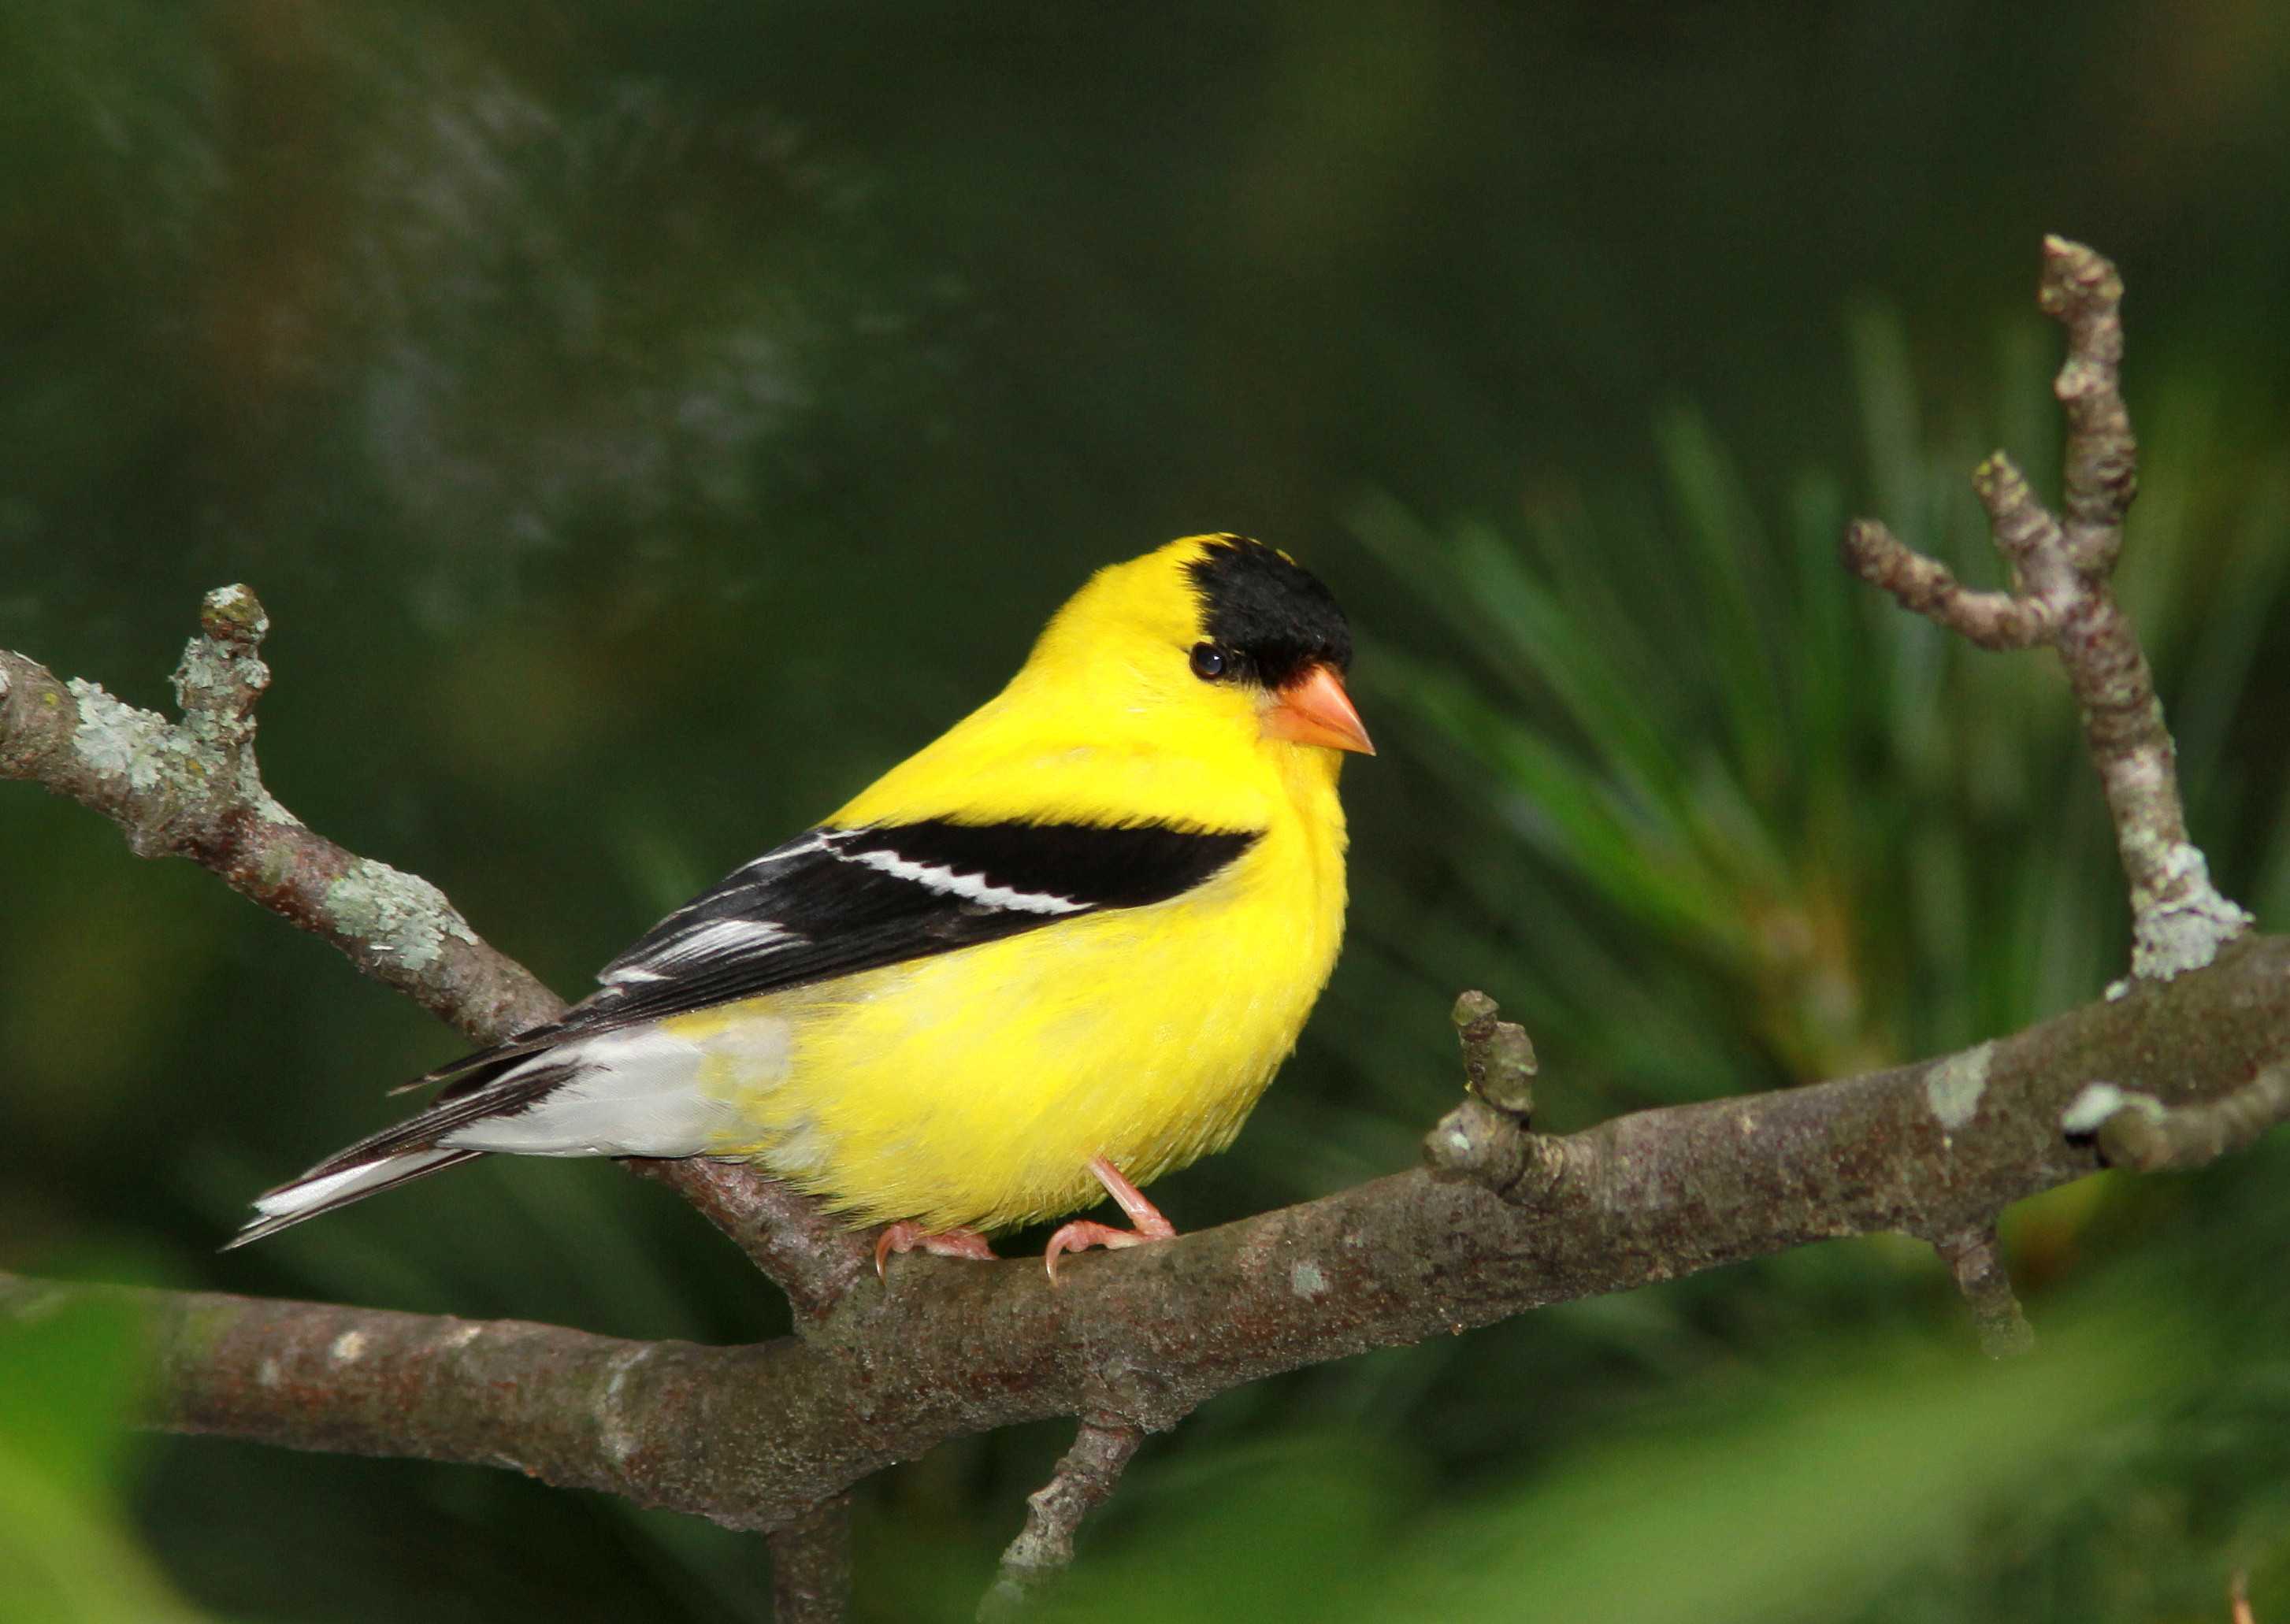 Cute American Goldfinch